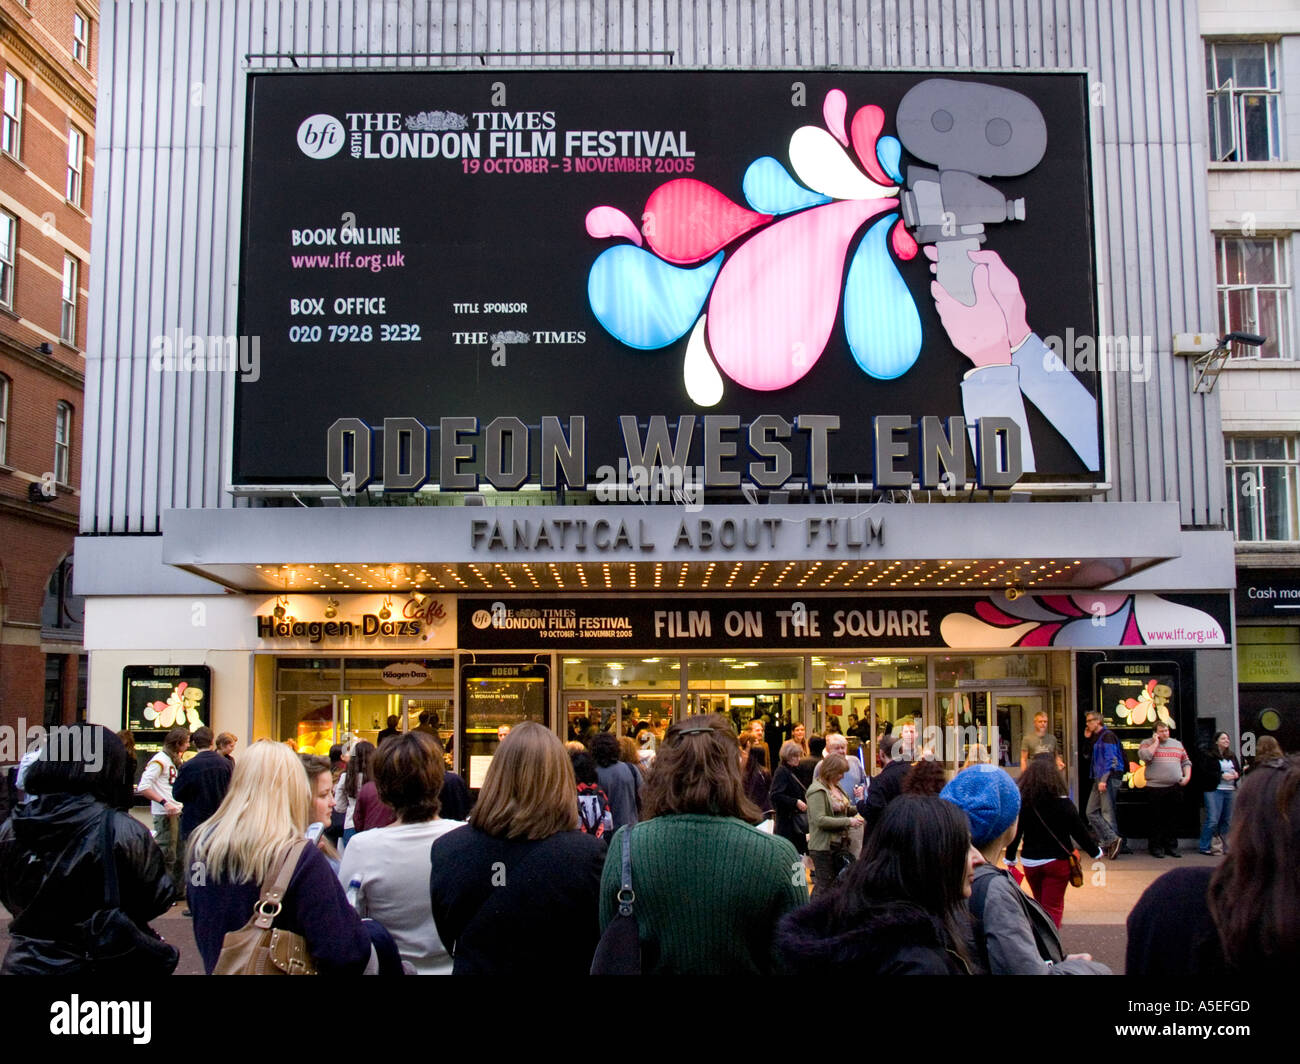 Odeon West End Cinema during the London Film Festival - Stock Image